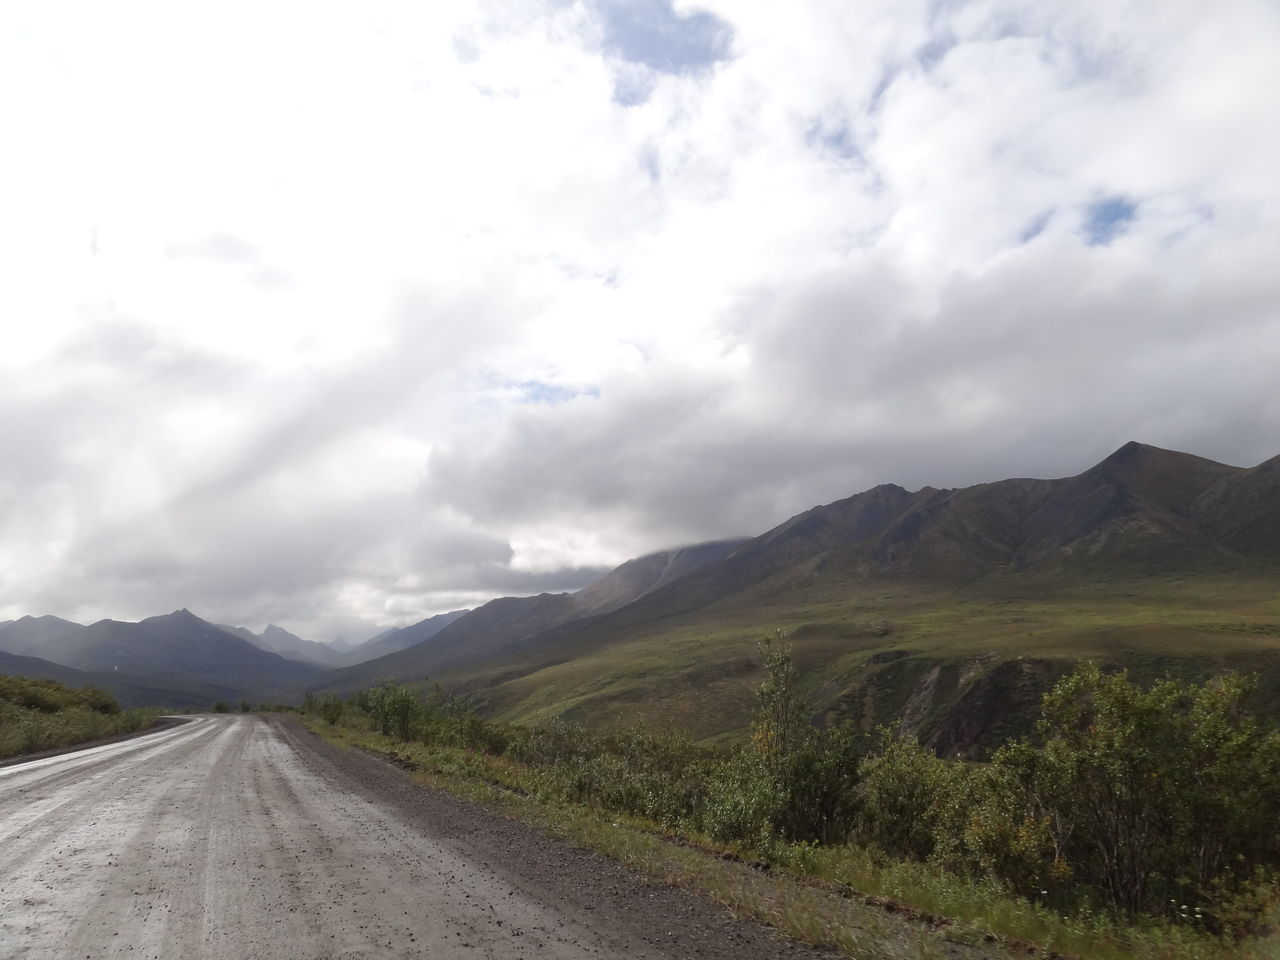 Beauty In Nature Canada Cloud - Sky Day Dempster Highway Grass Landscape Mountain Mountain Range Nature No People Outdoors Road Scenics Sky The Way Forward Tombstone Territorial Park Tranquil Scene Tranquility Transportation Yukon